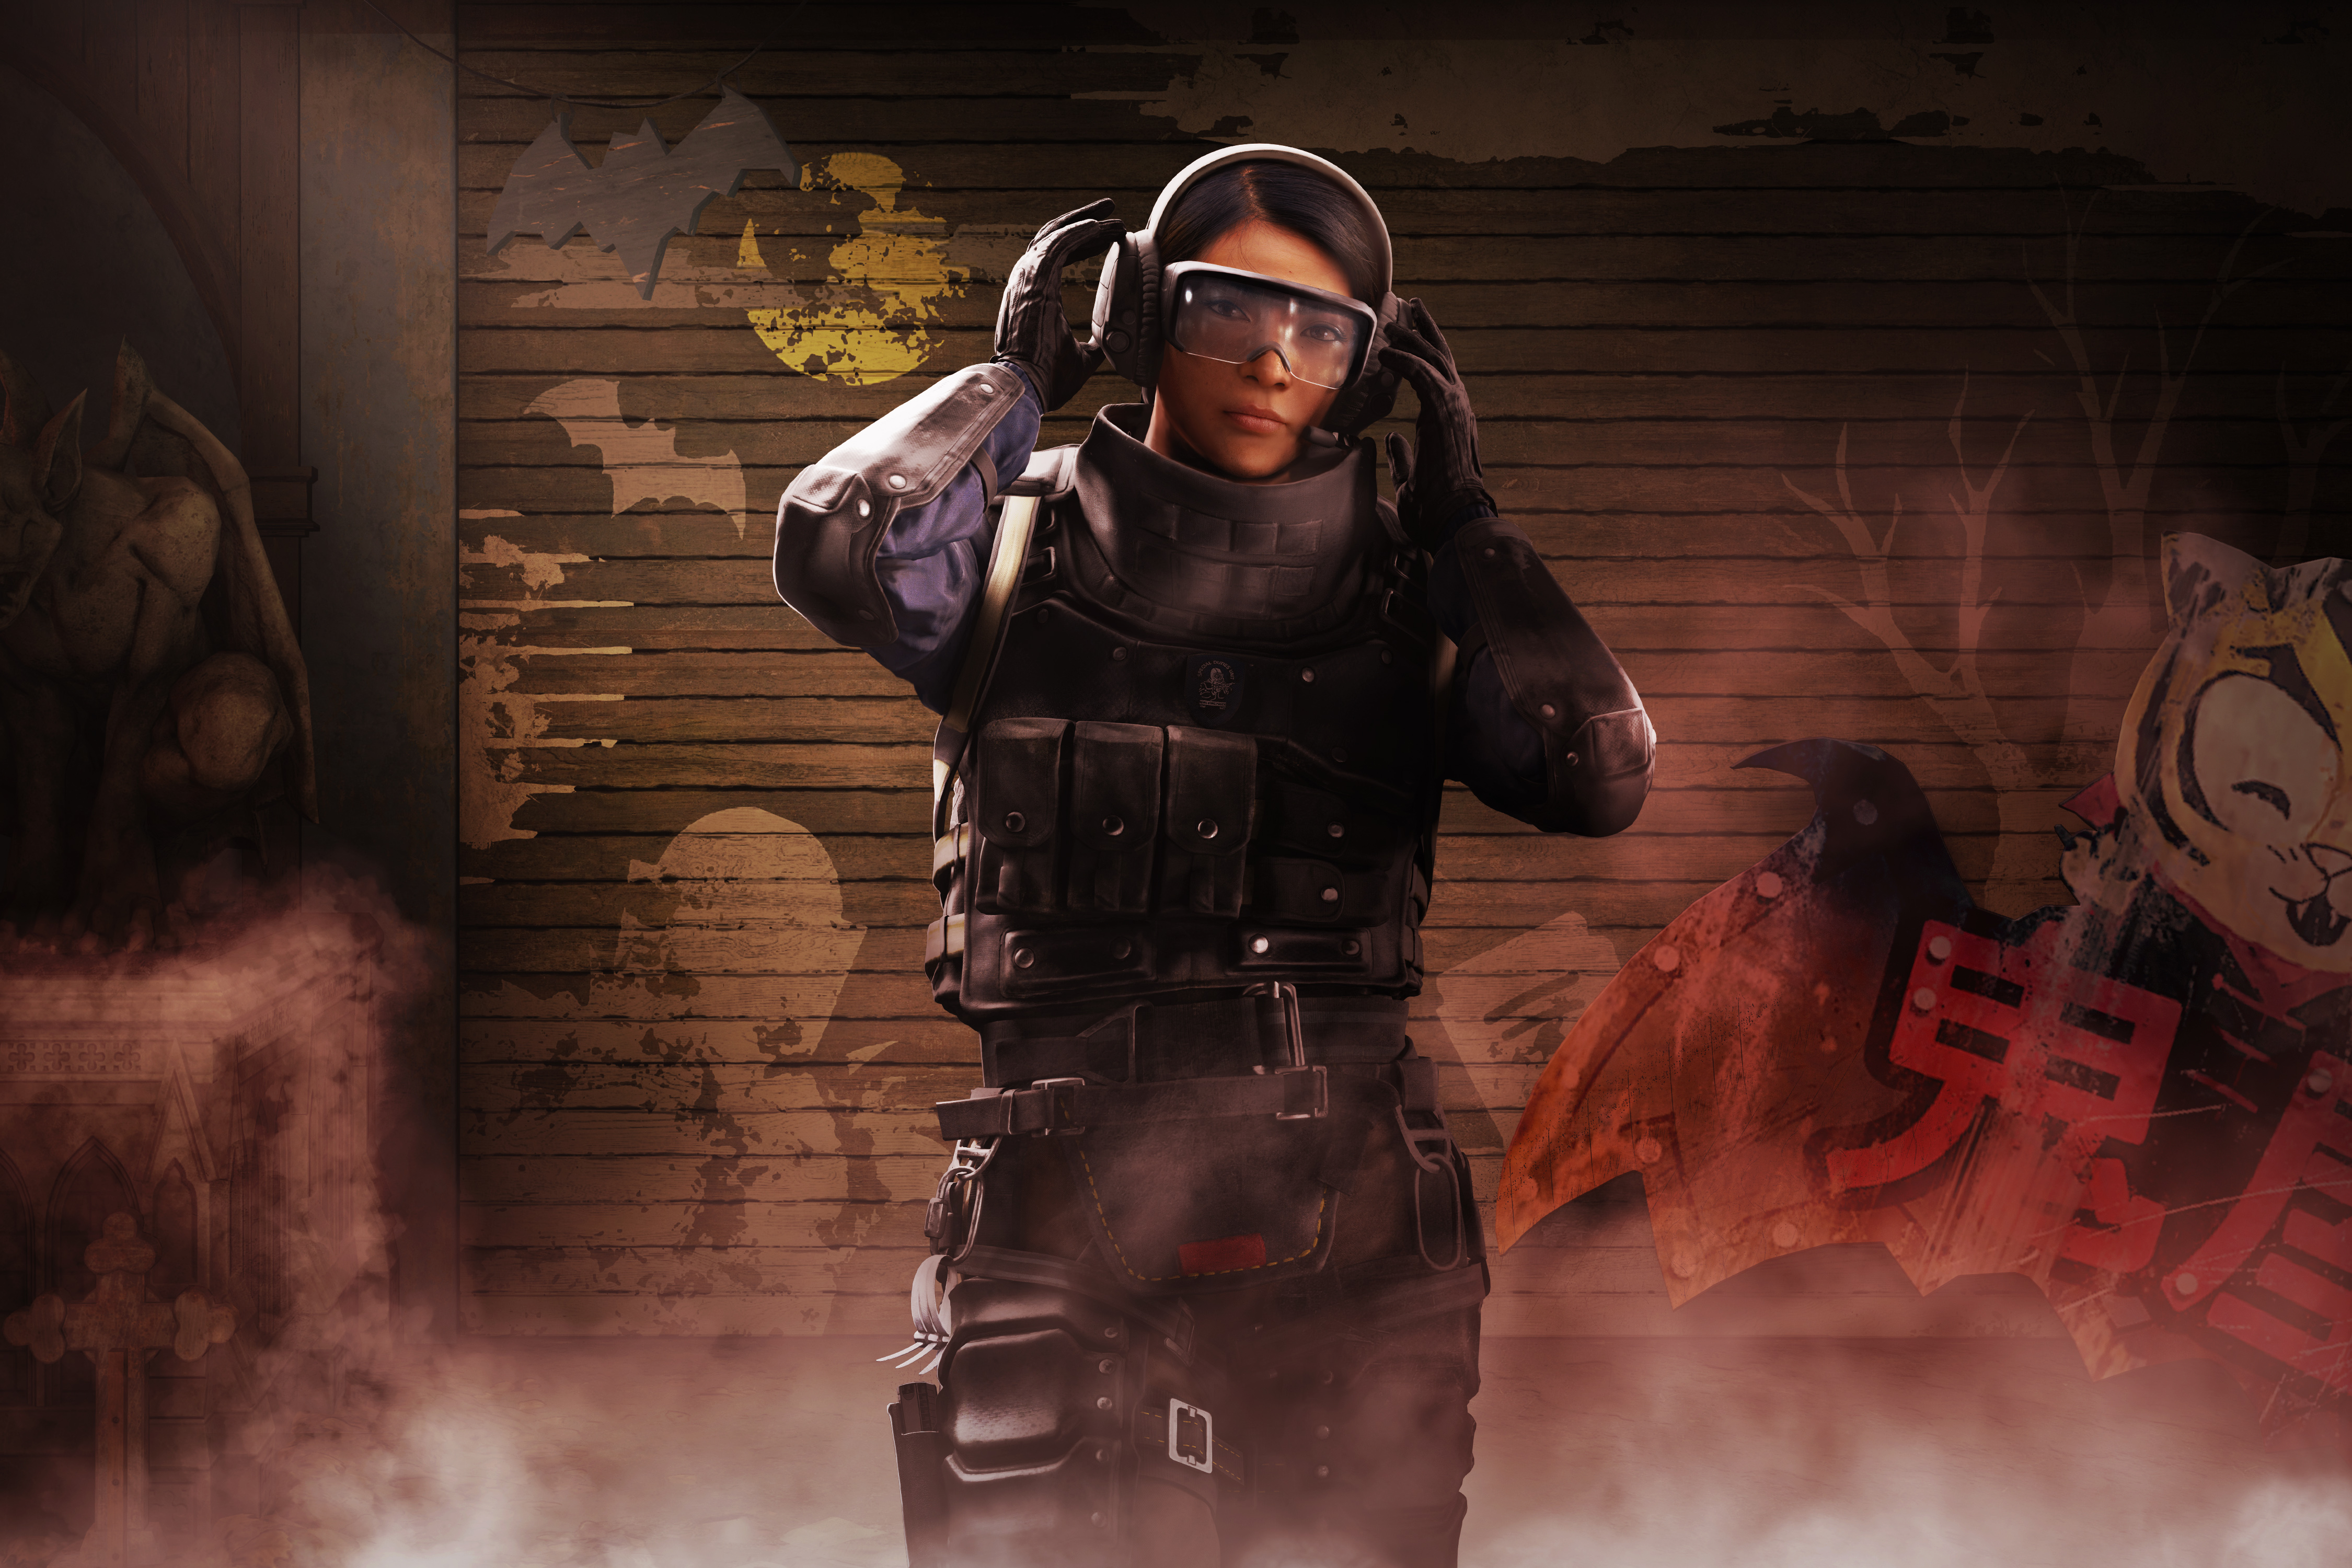 Rainbow Six Siege - An operator prepares for a round of combat